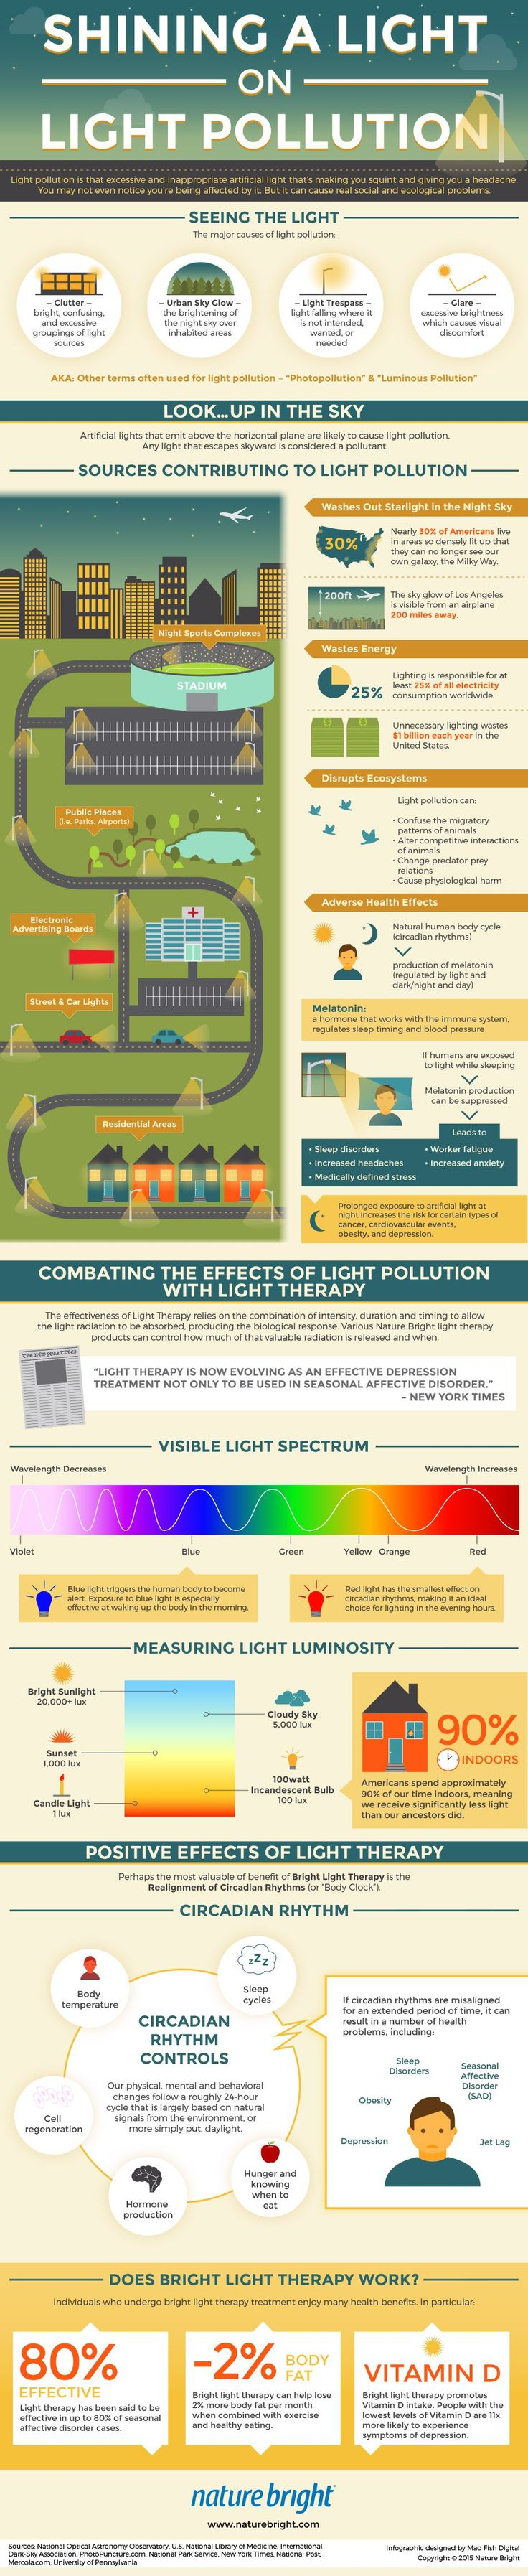 Shining a Light on Light Pollution